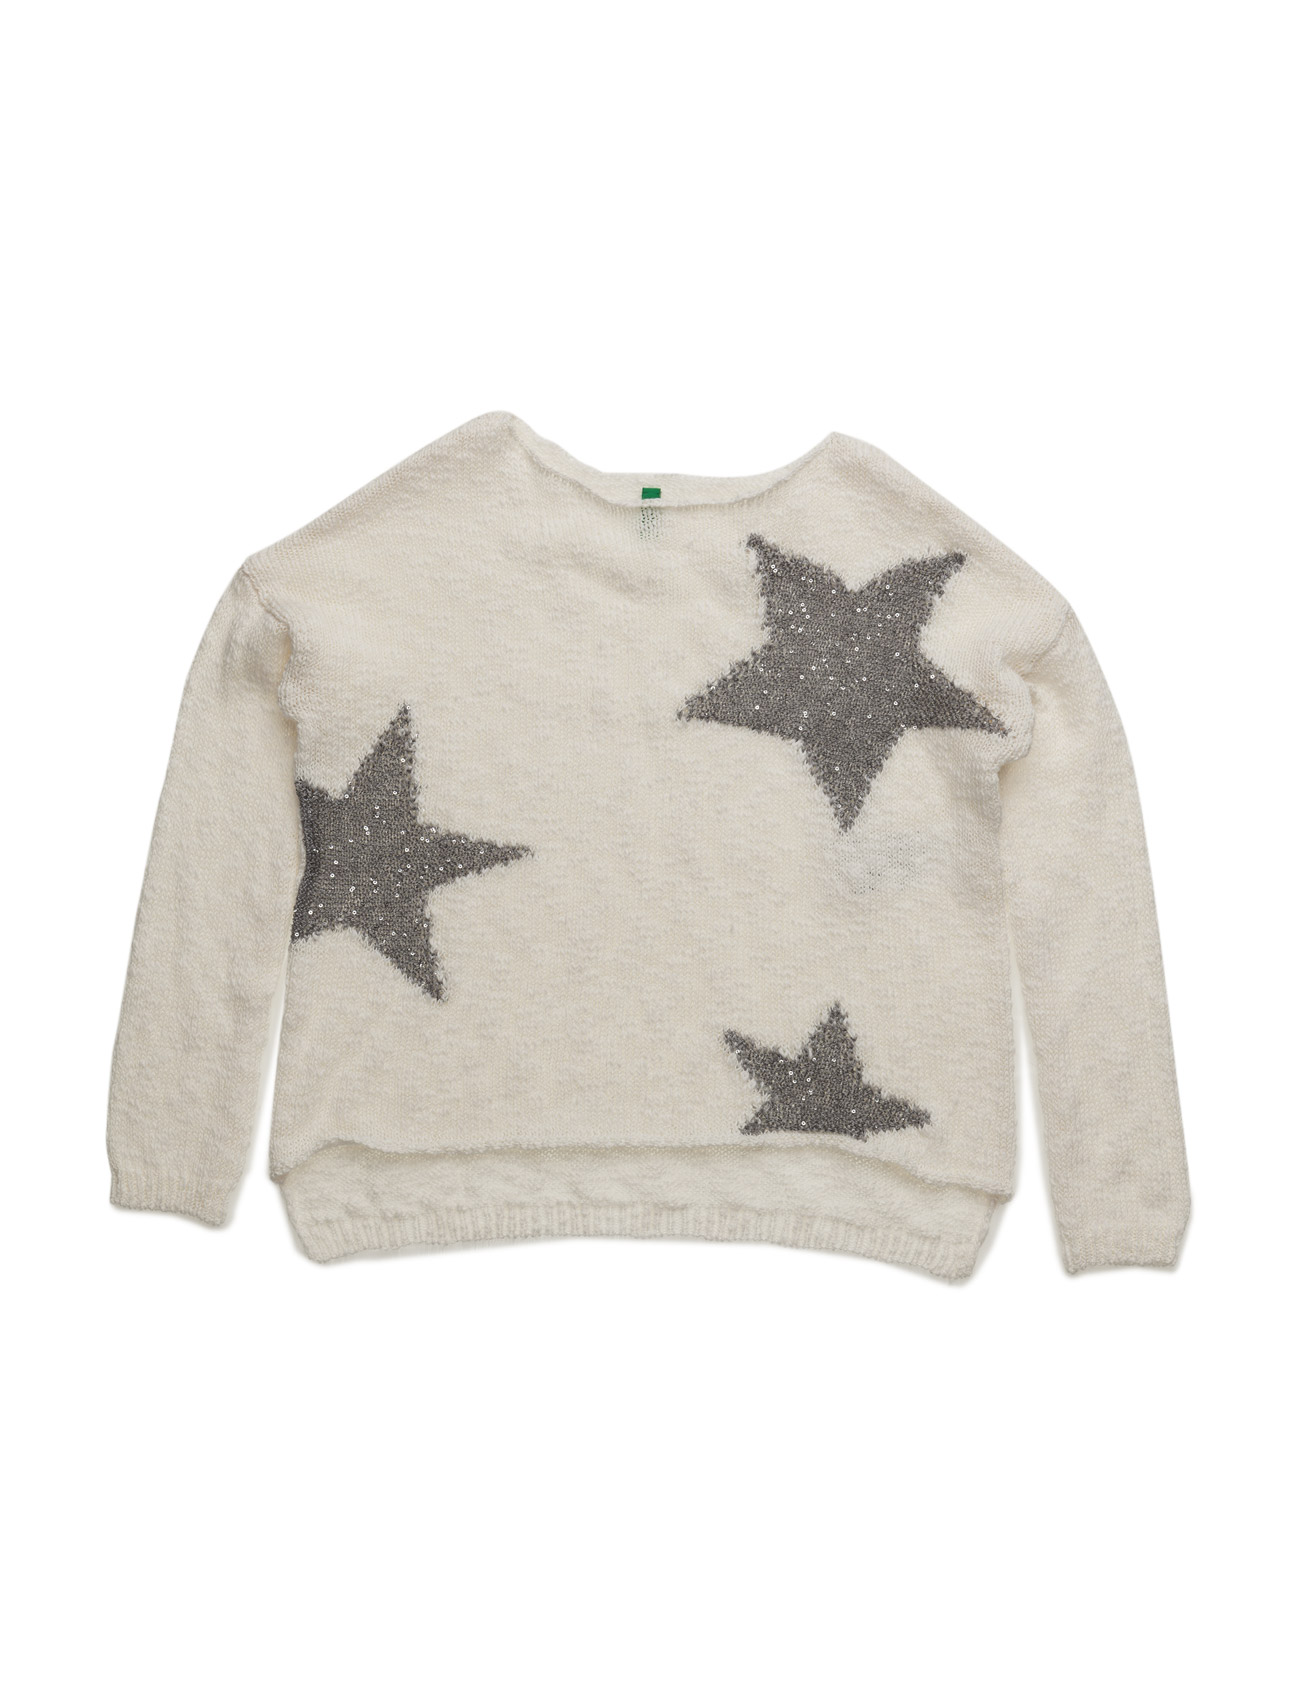 f11f1eec6fa Sweater L/S United Colors of Benetton til Børn i Off White ...